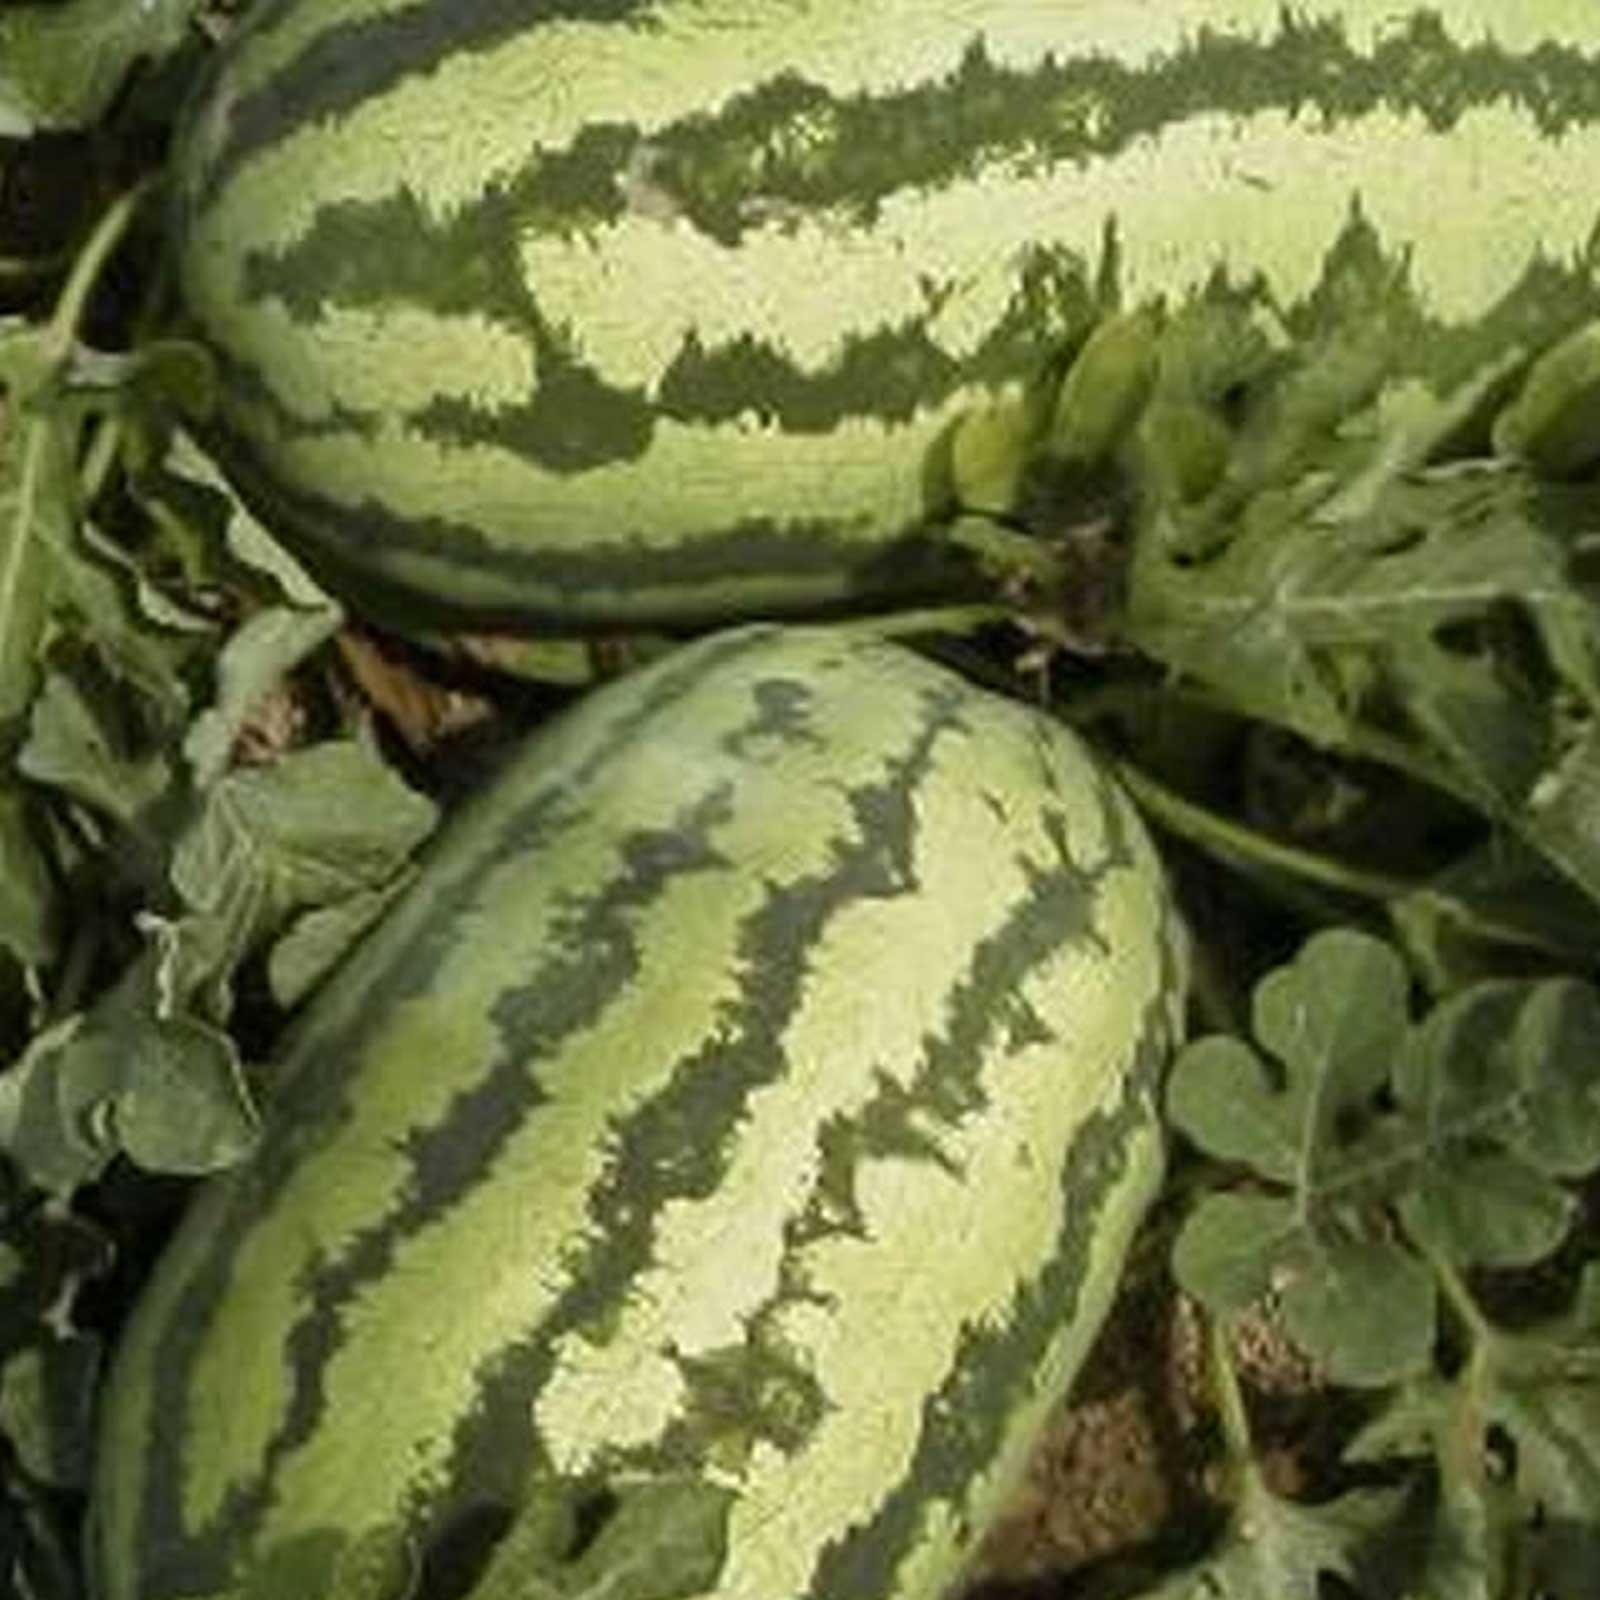 Watermelon Garden Seeds - Jubilee - 5 Lbs Bulk - Non-GMO, Heirloom Vegetable Gardening Fruit Melon Seeds by Mountain Valley Seed Company (Image #1)